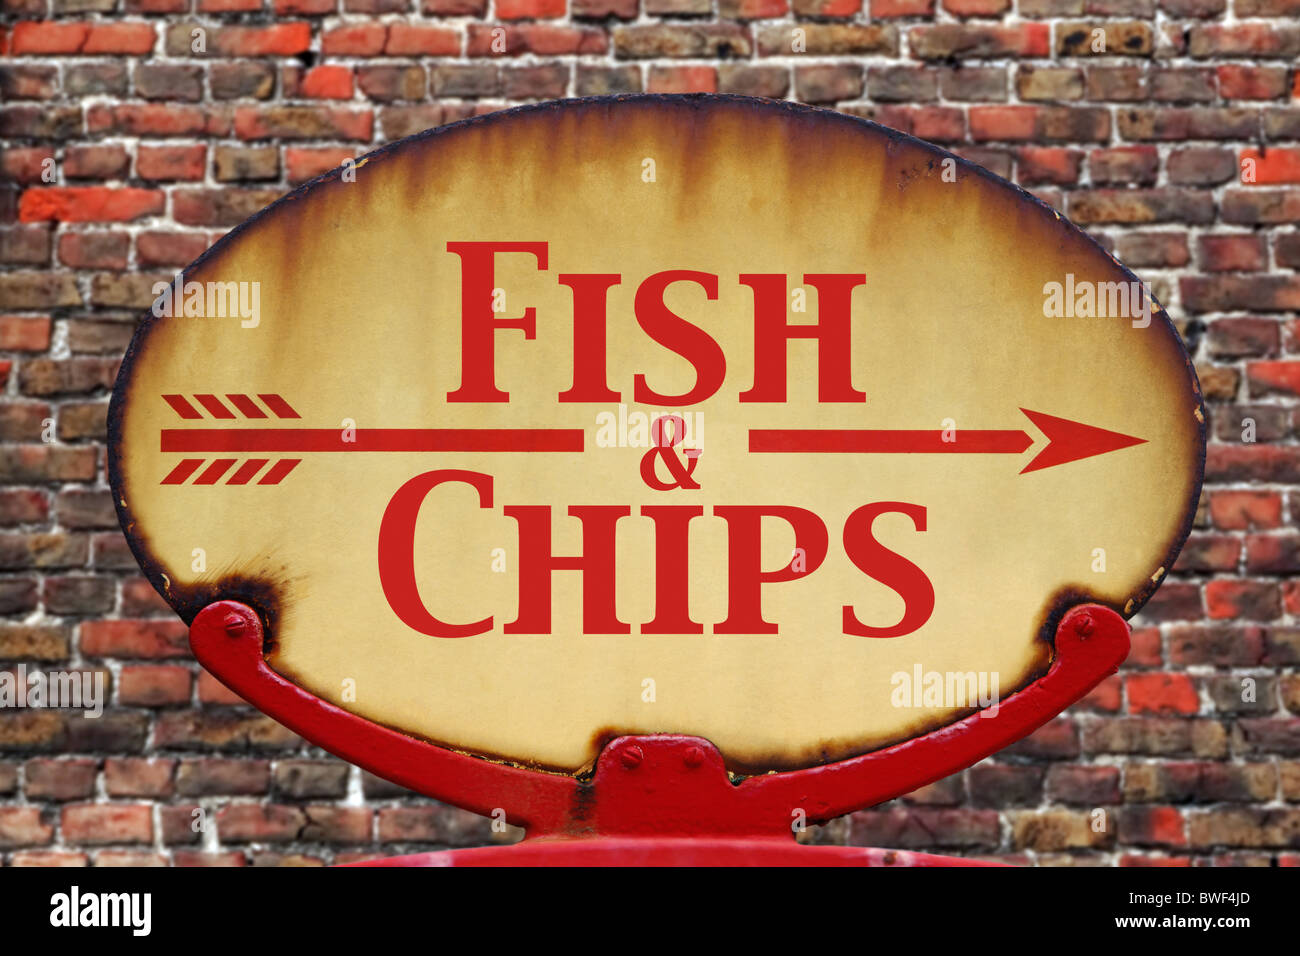 A rusty old retro arrow sign with the text Fish and chips - Stock Image